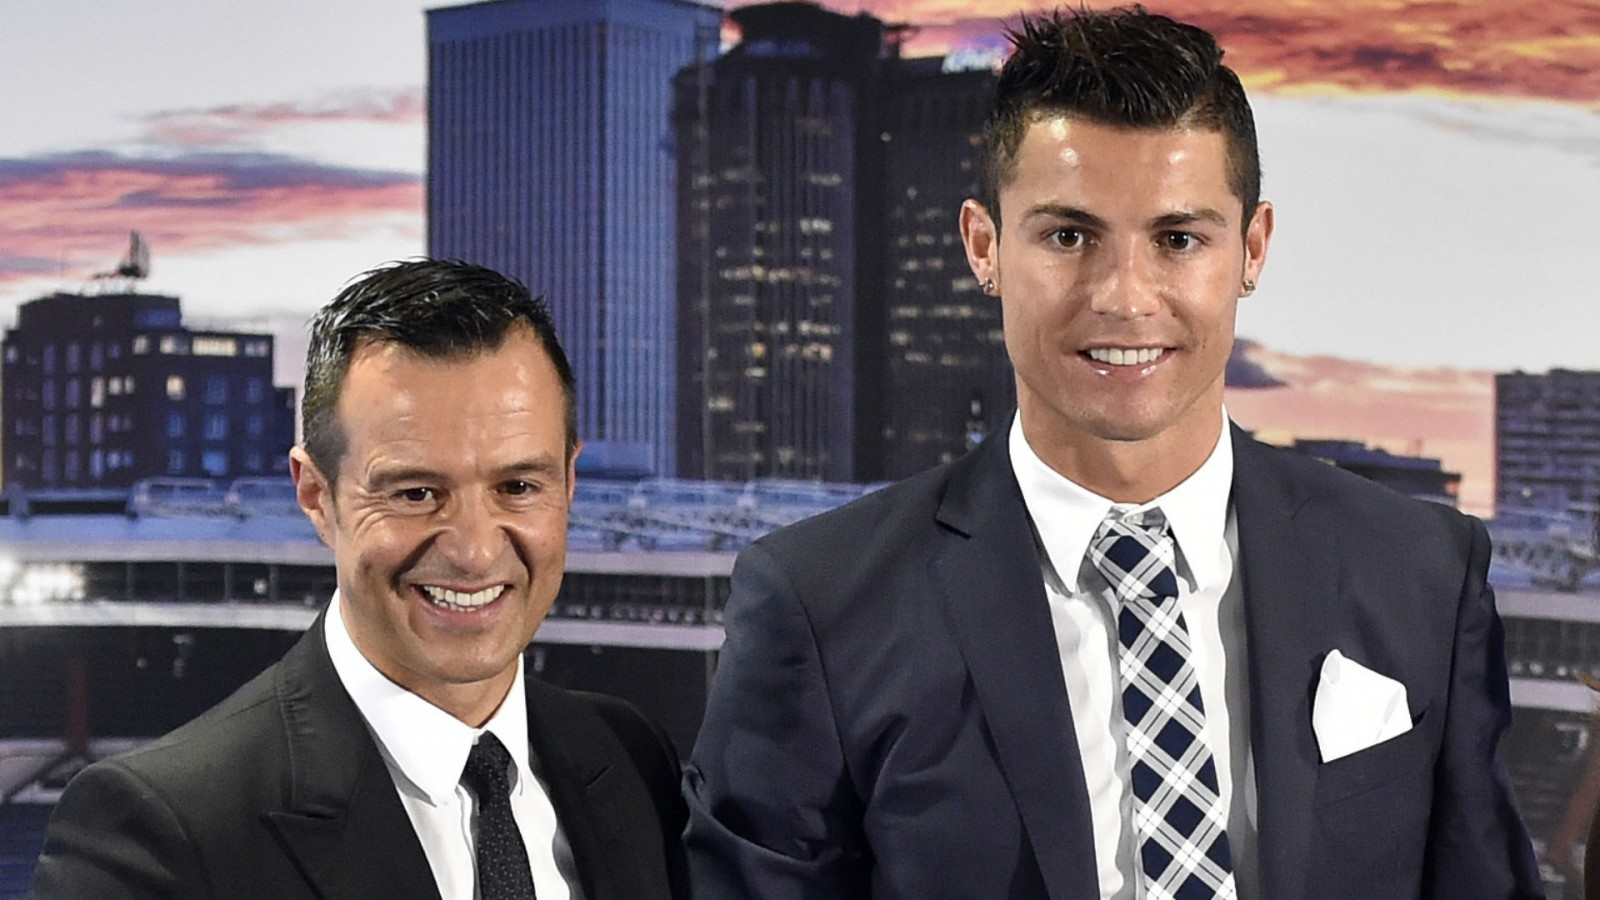 jorge-mendes-ciclismo/